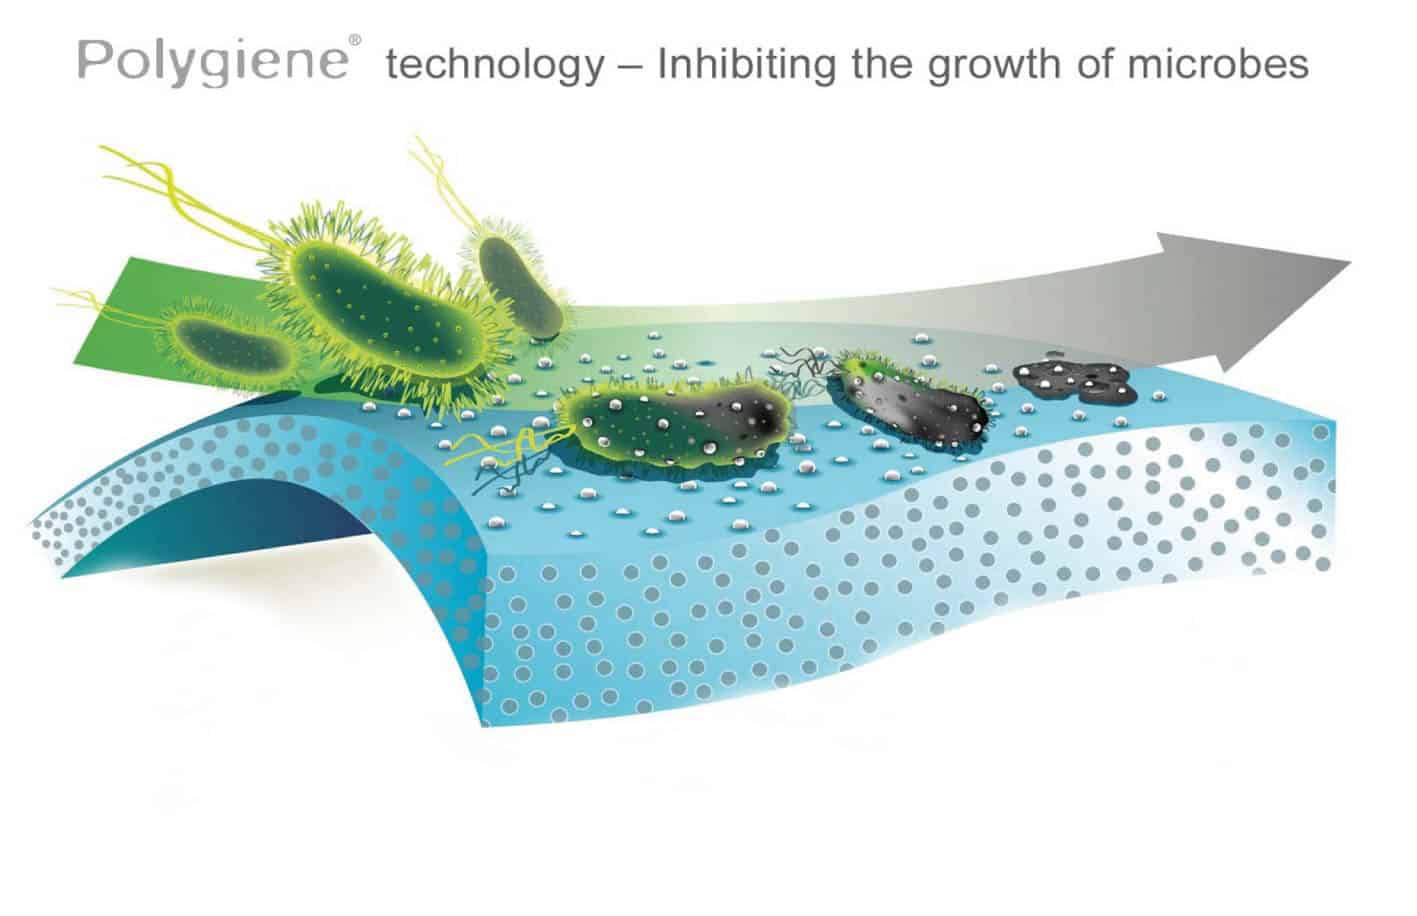 Graphic shows germs touching the fabric and dying. credit - 2007 copyright Polygiene A/B